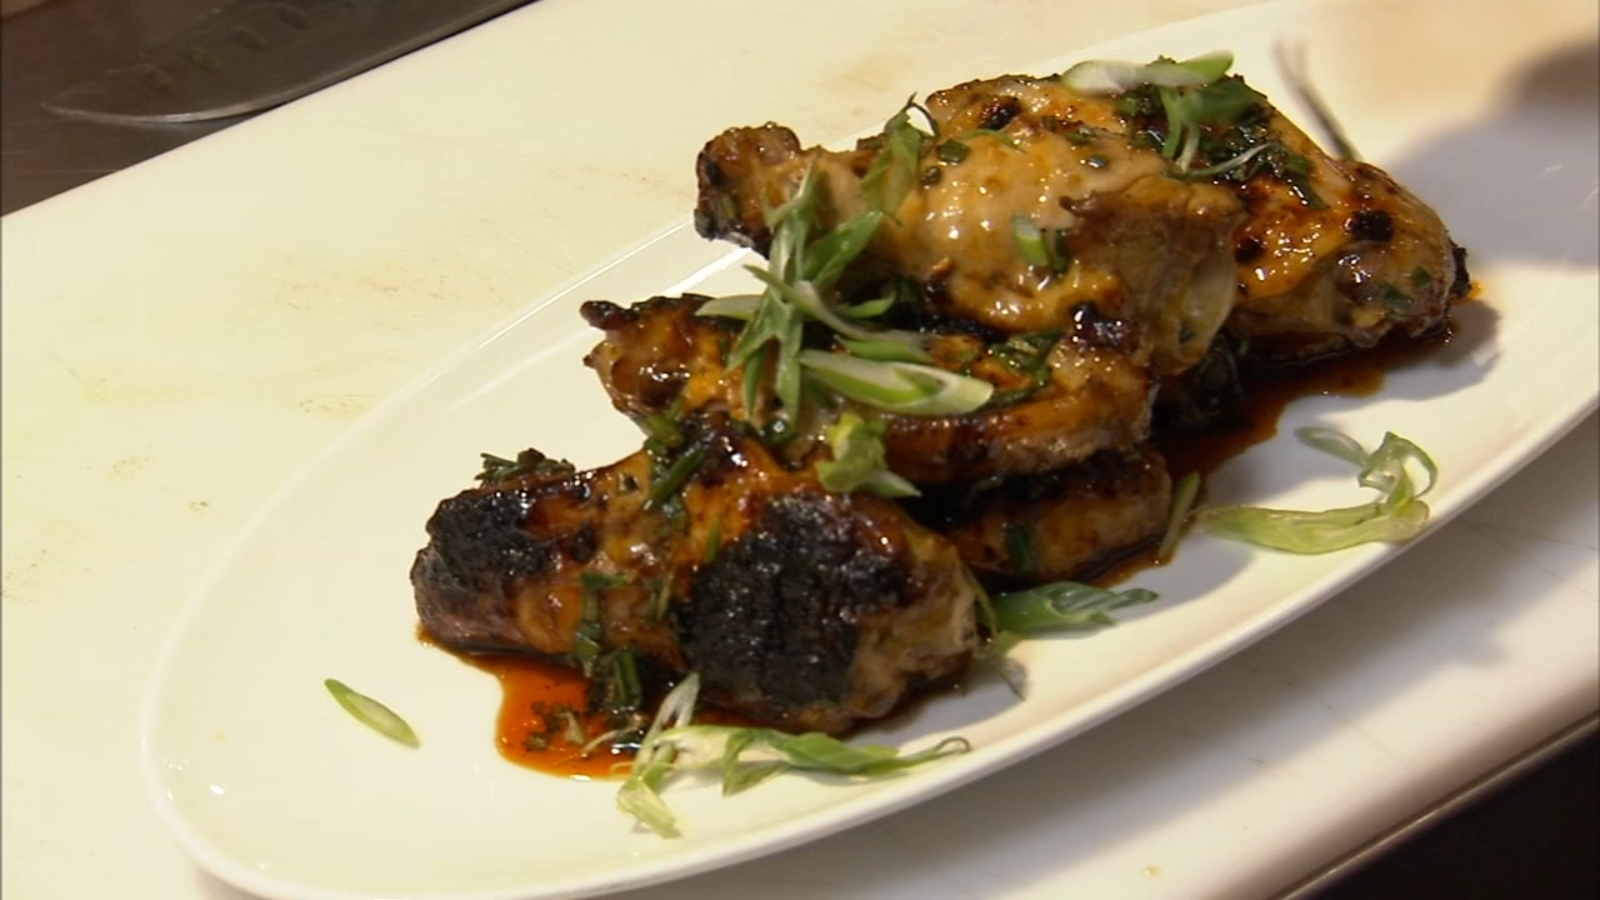 6 Minute Meal: The Common's chili oil glazed wings